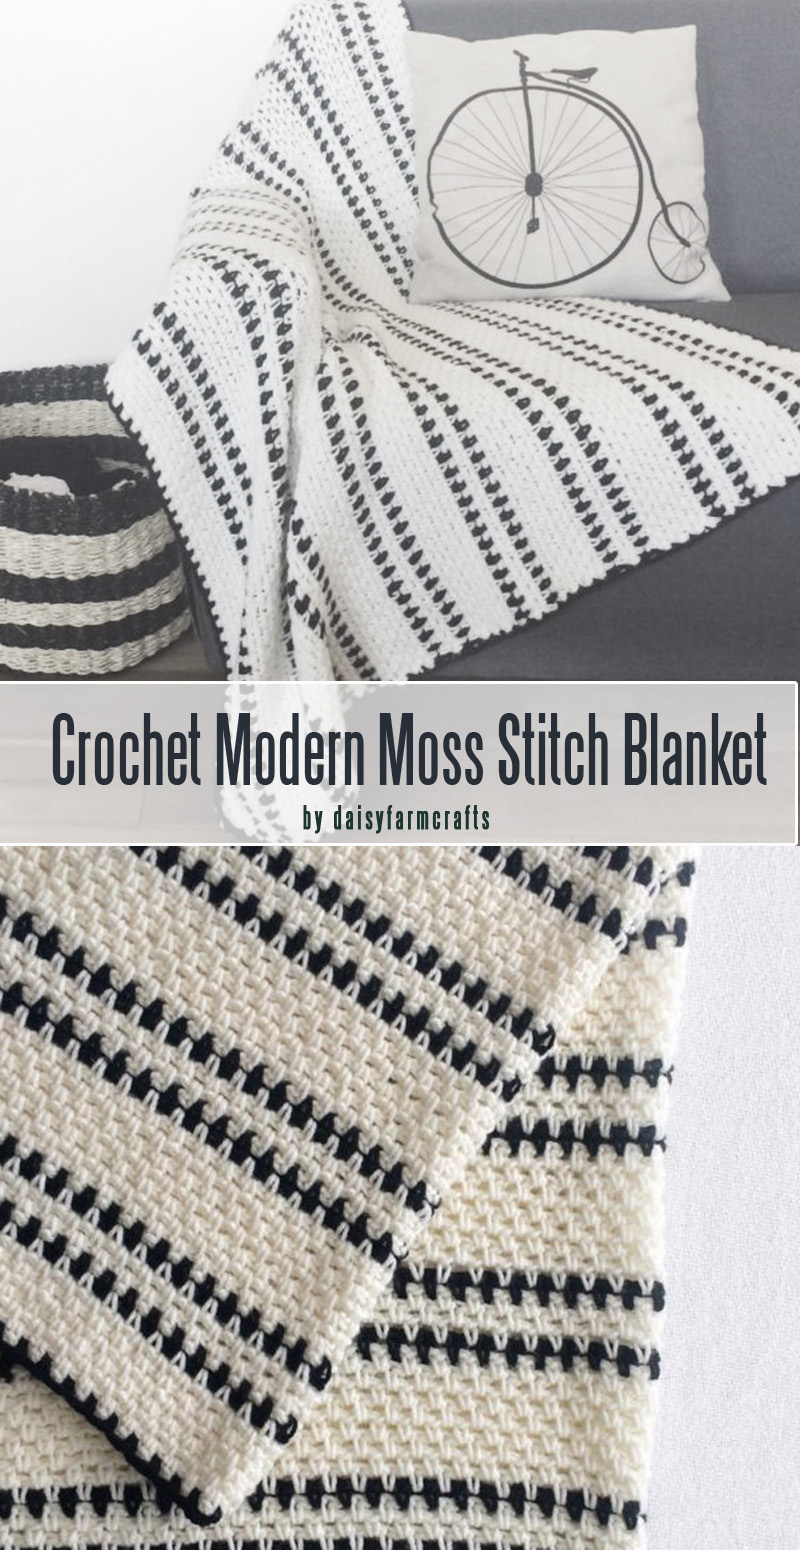 Crochet Modern Moss Stitch Blanket for beginners curated by craft-mart.com #crochetfreepattern #crochet4beginners #freecrochetbabyblanketpattern